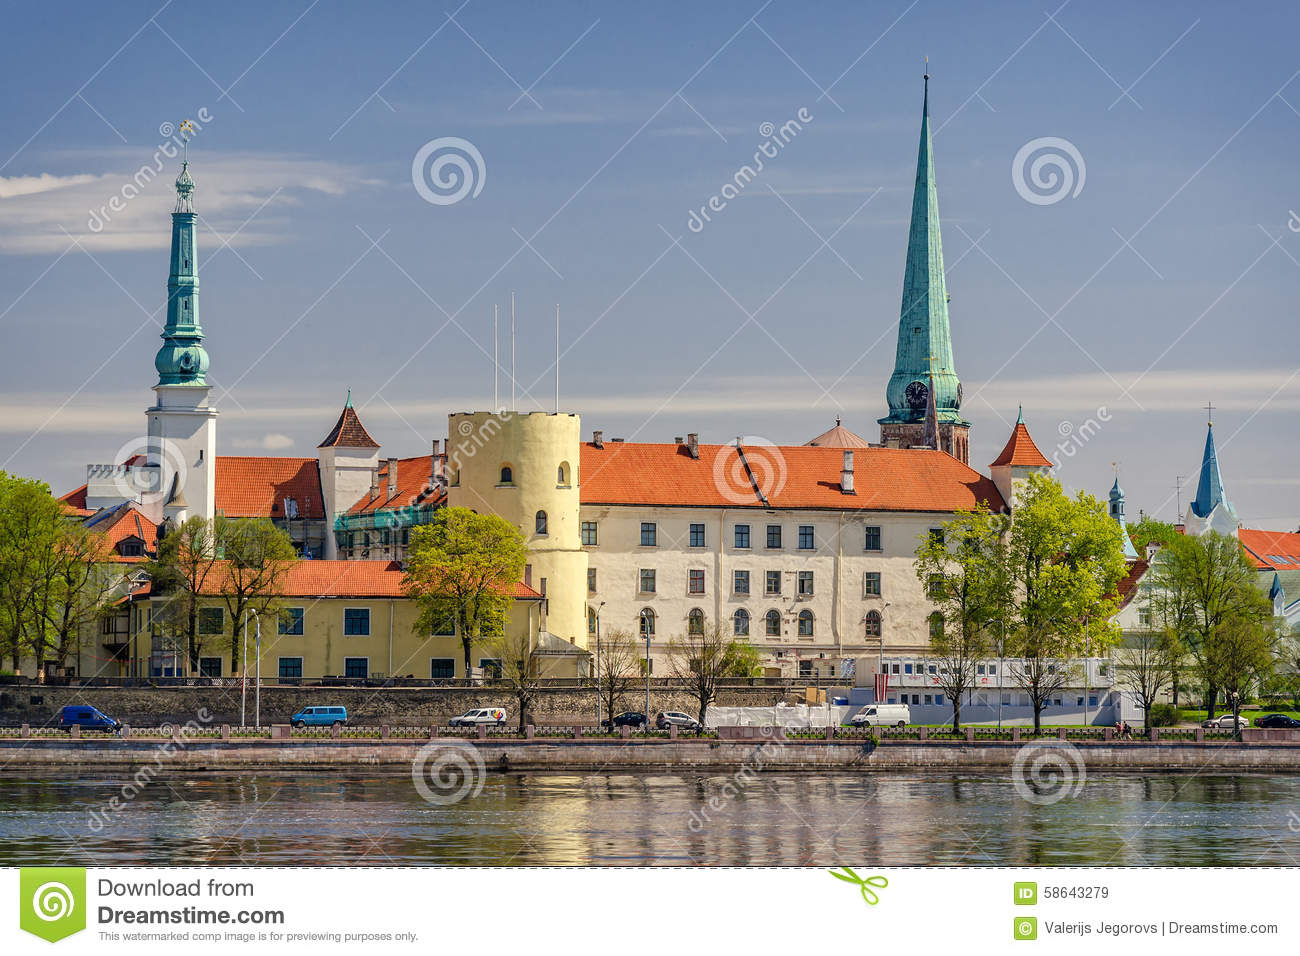 dating view latvia Check if datingviewlatviacom is a scam website or a legit website is datingviewlatviacom fraudulent or infected with malware, phishing, fraud, scam.